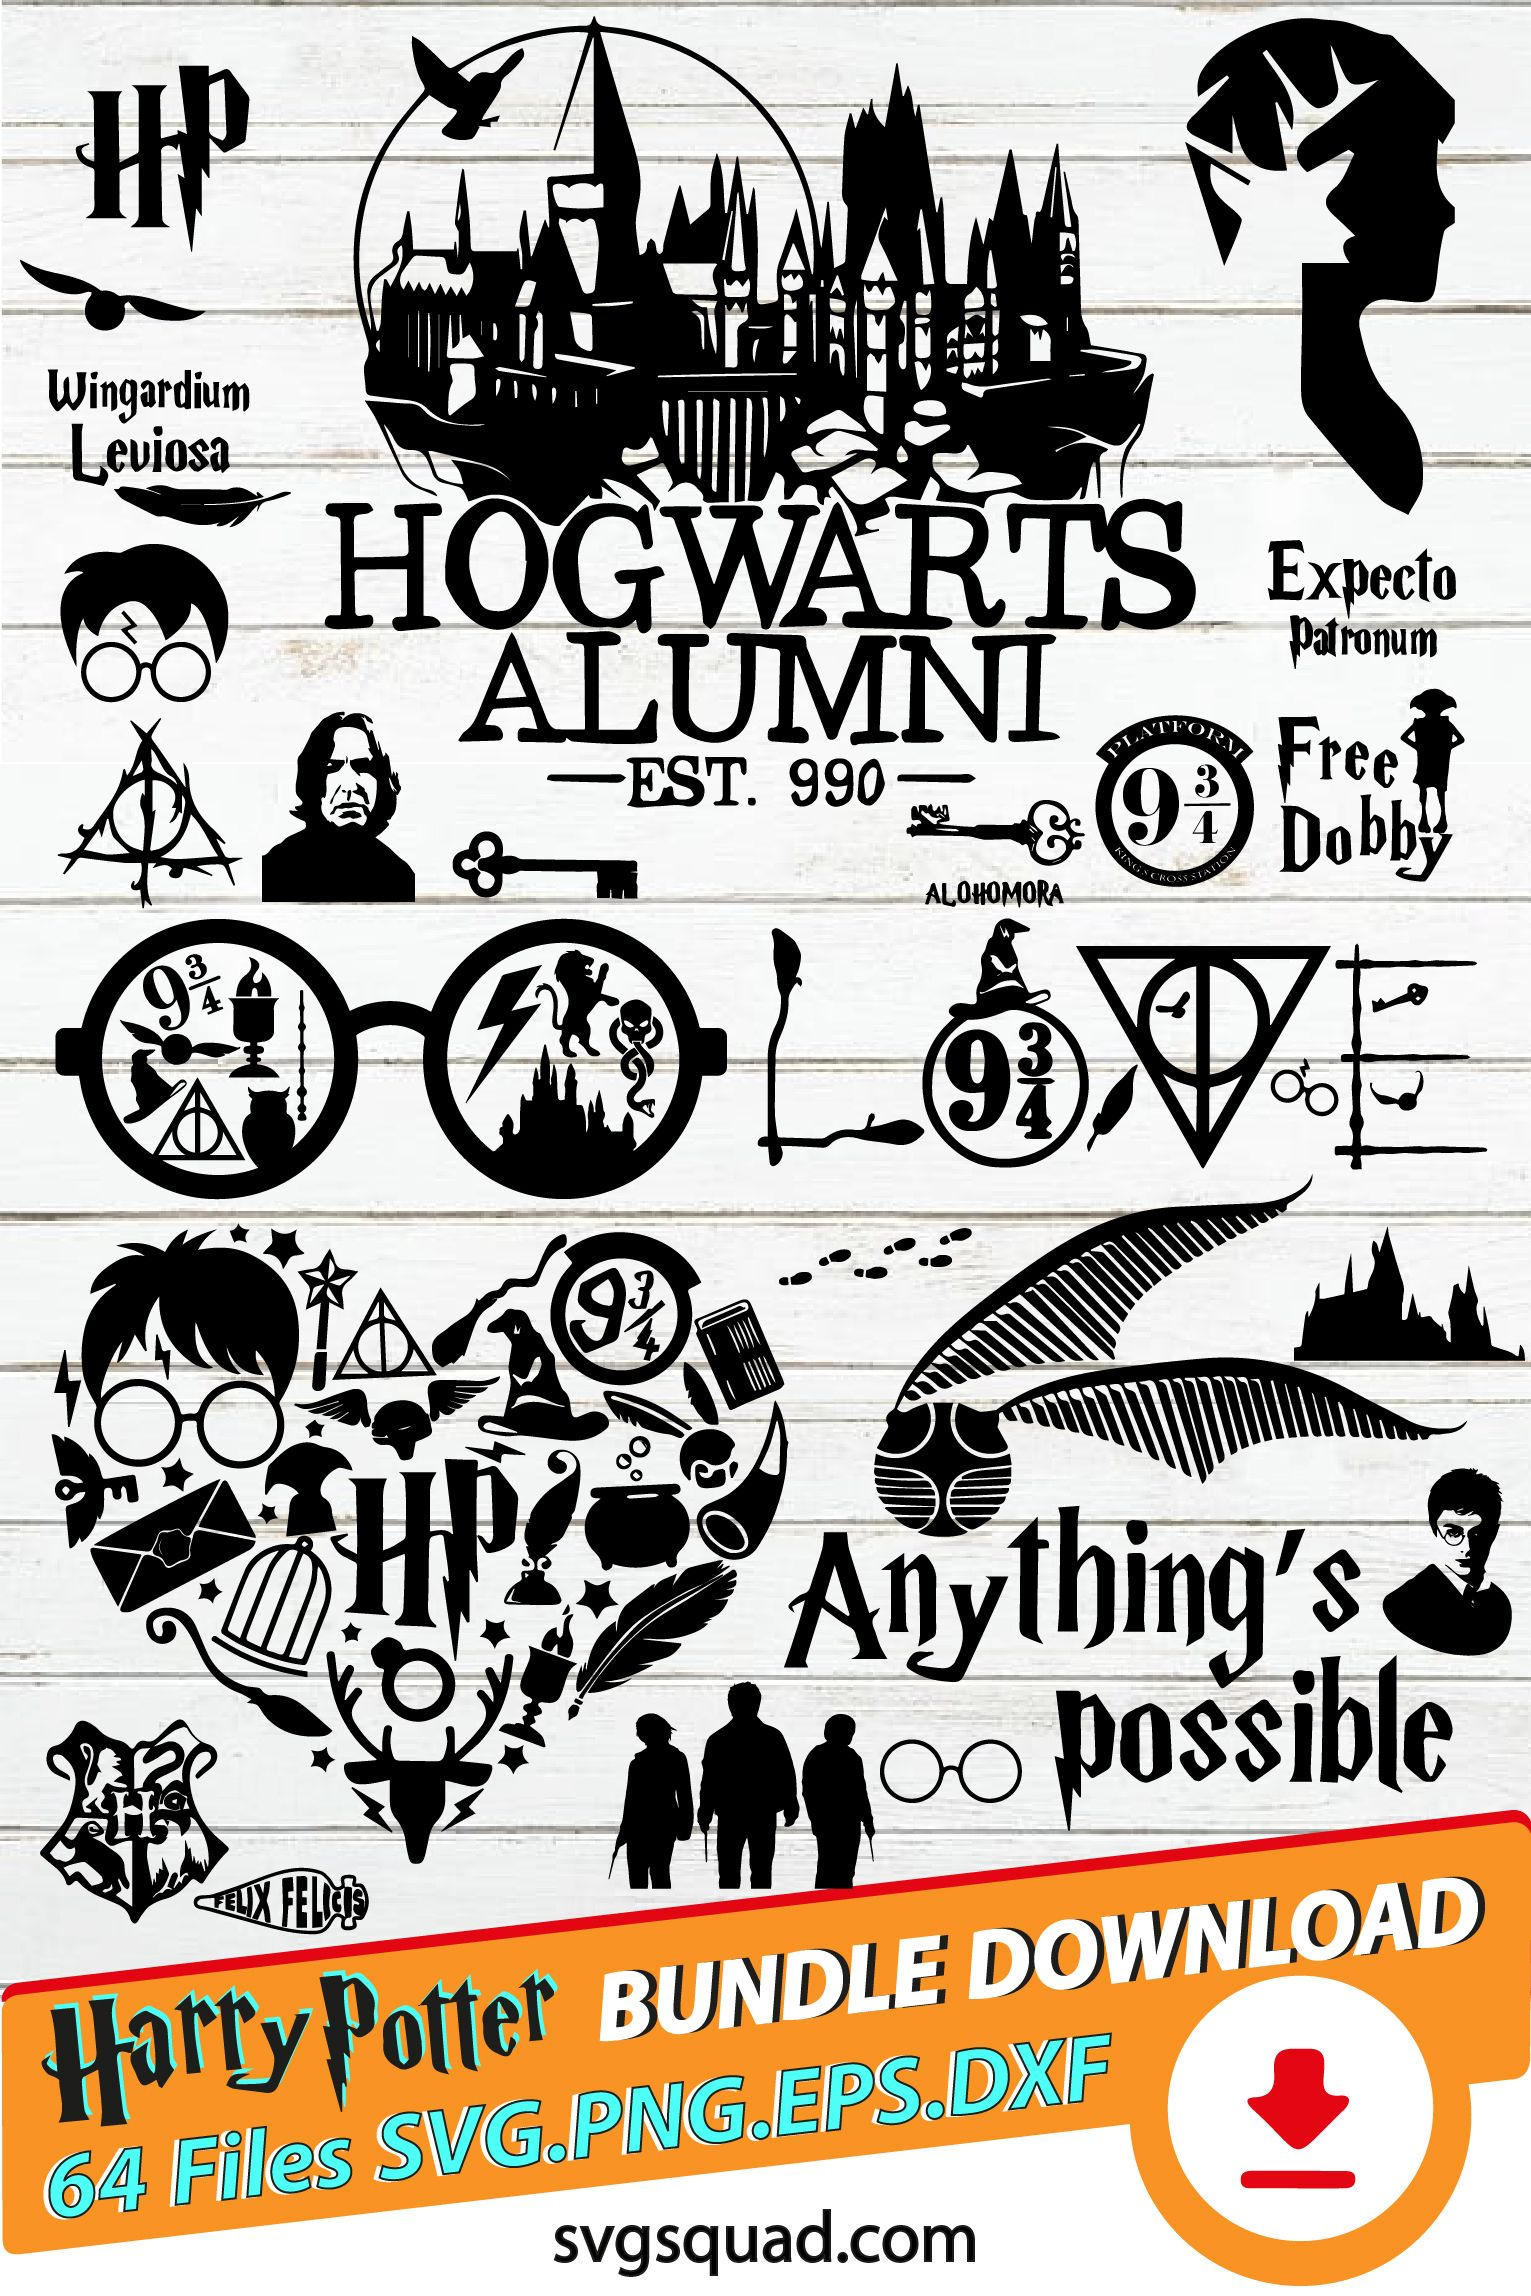 Free Harry Potter Svg Files : harry, potter, files, HARRY, POTTER, Bundle, Hogwarts, Harry, Potter, Silhouette,, Decor,, Decal